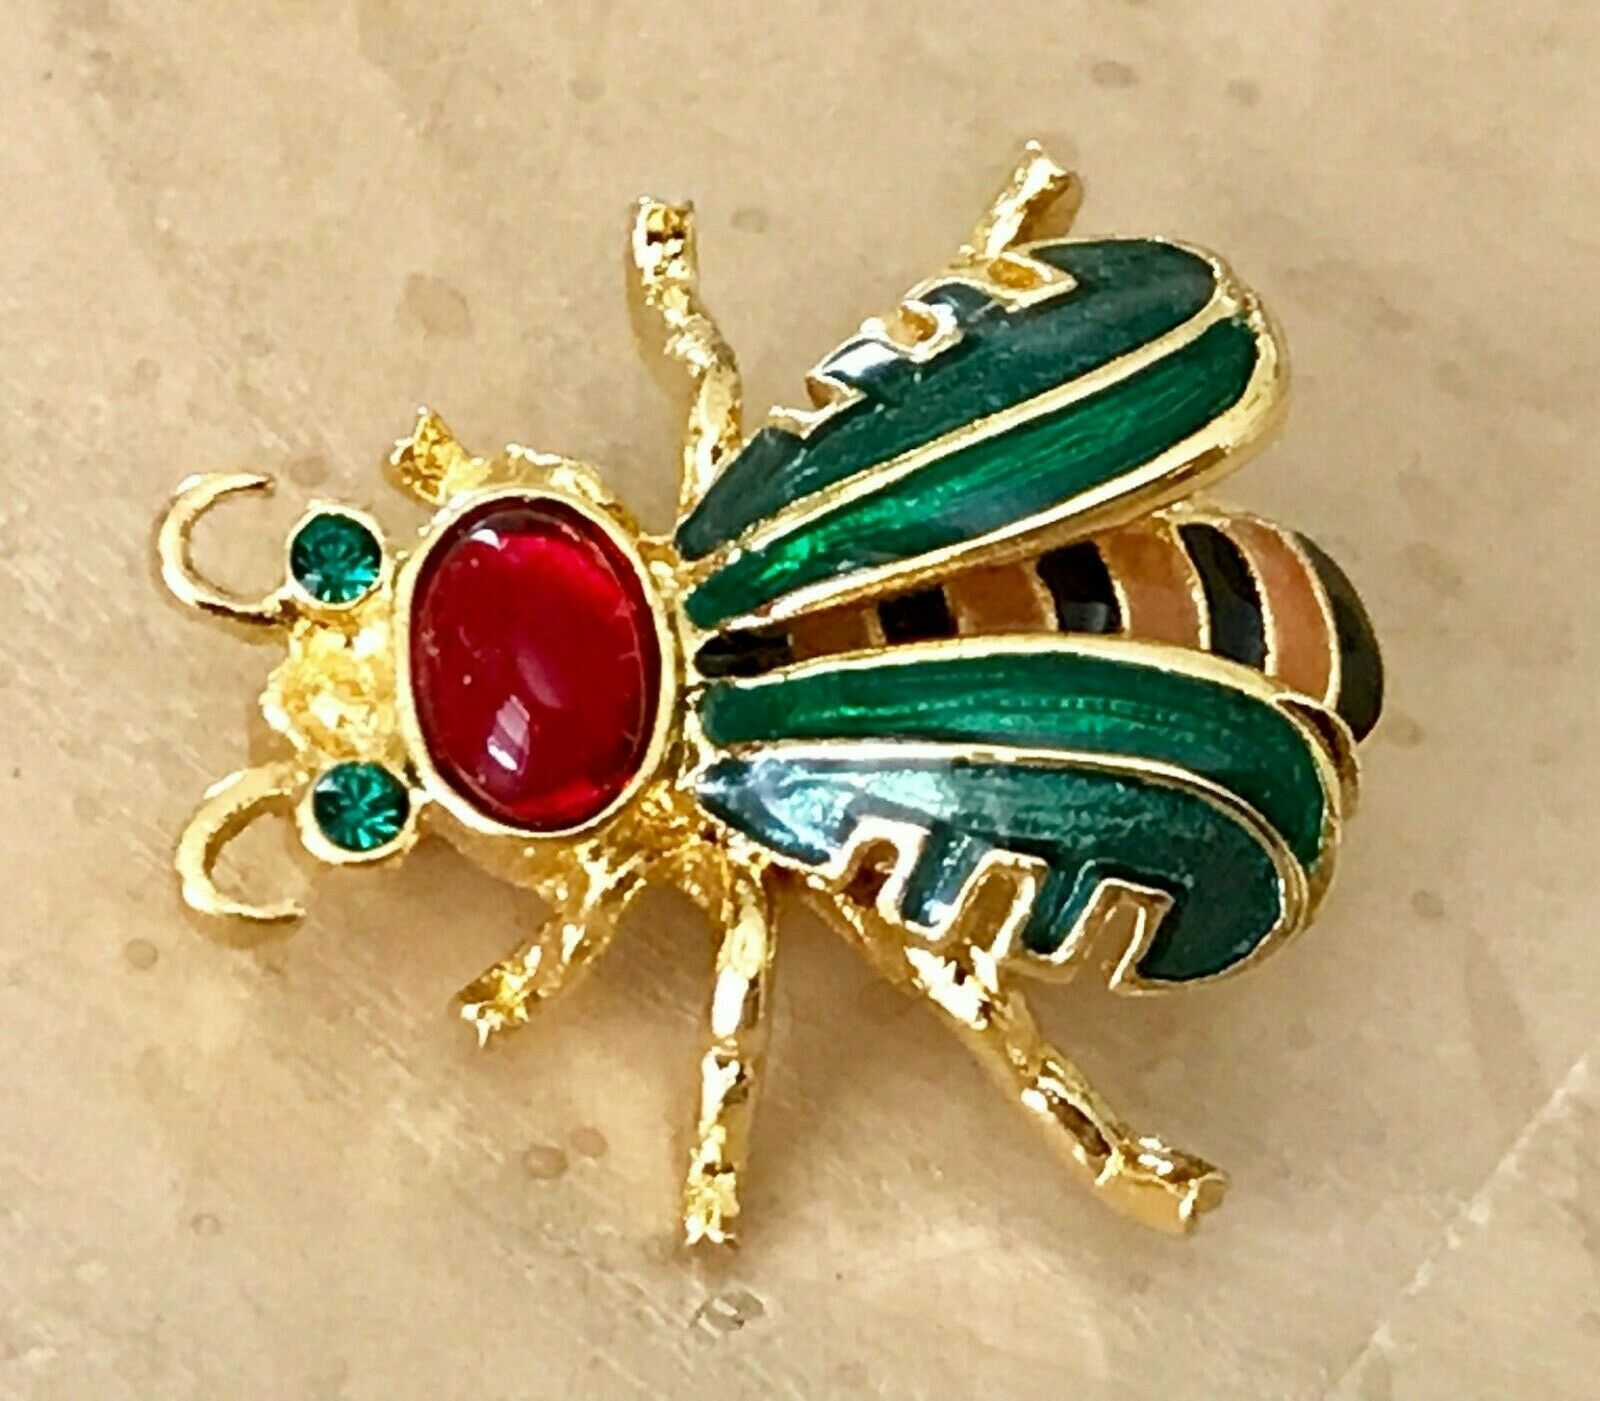 Buy exquisite Brooch Joan Rivers enamel red with Gemstone Bumblebee decorative pin gift